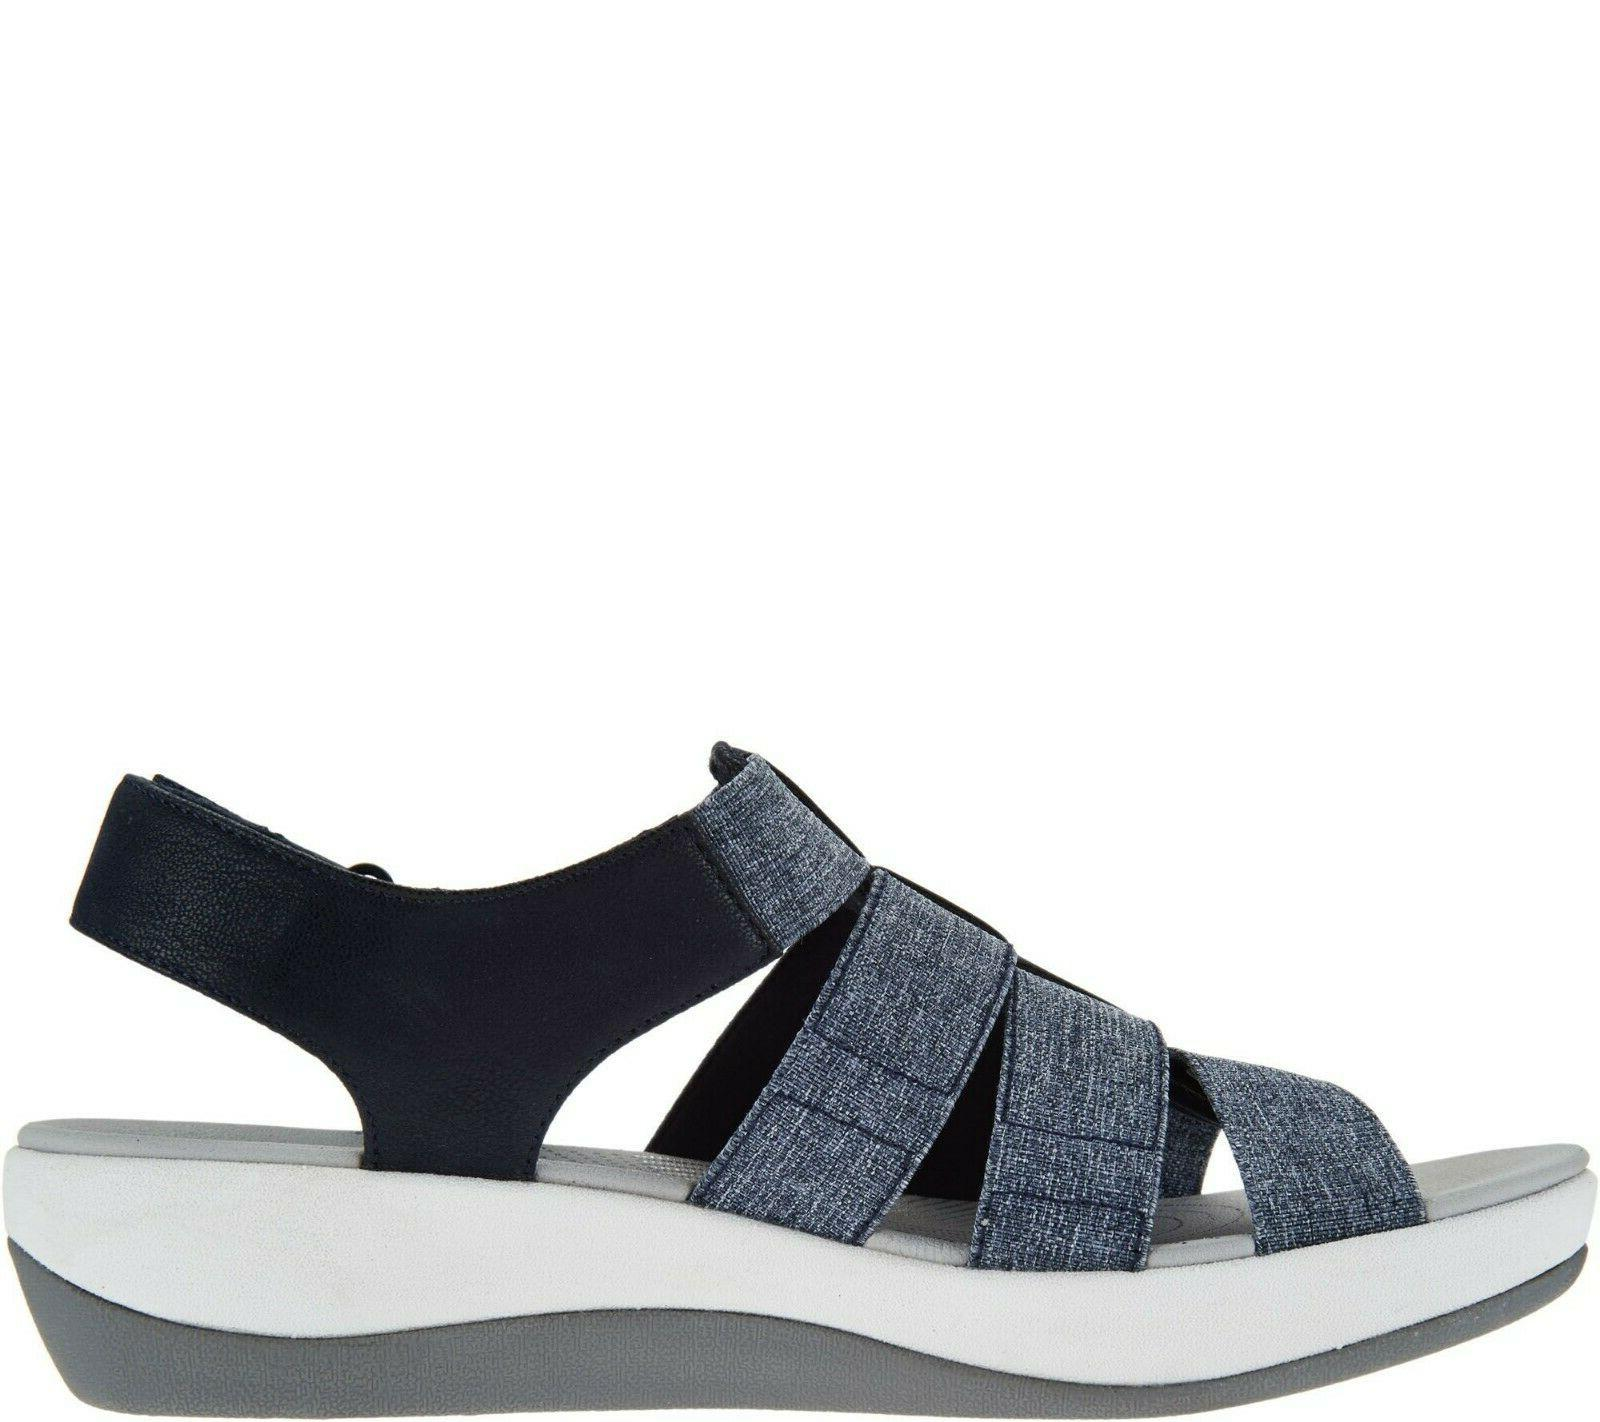 CLOUDSTEPPERS by Clarks Sport - Shaylie SZ $65